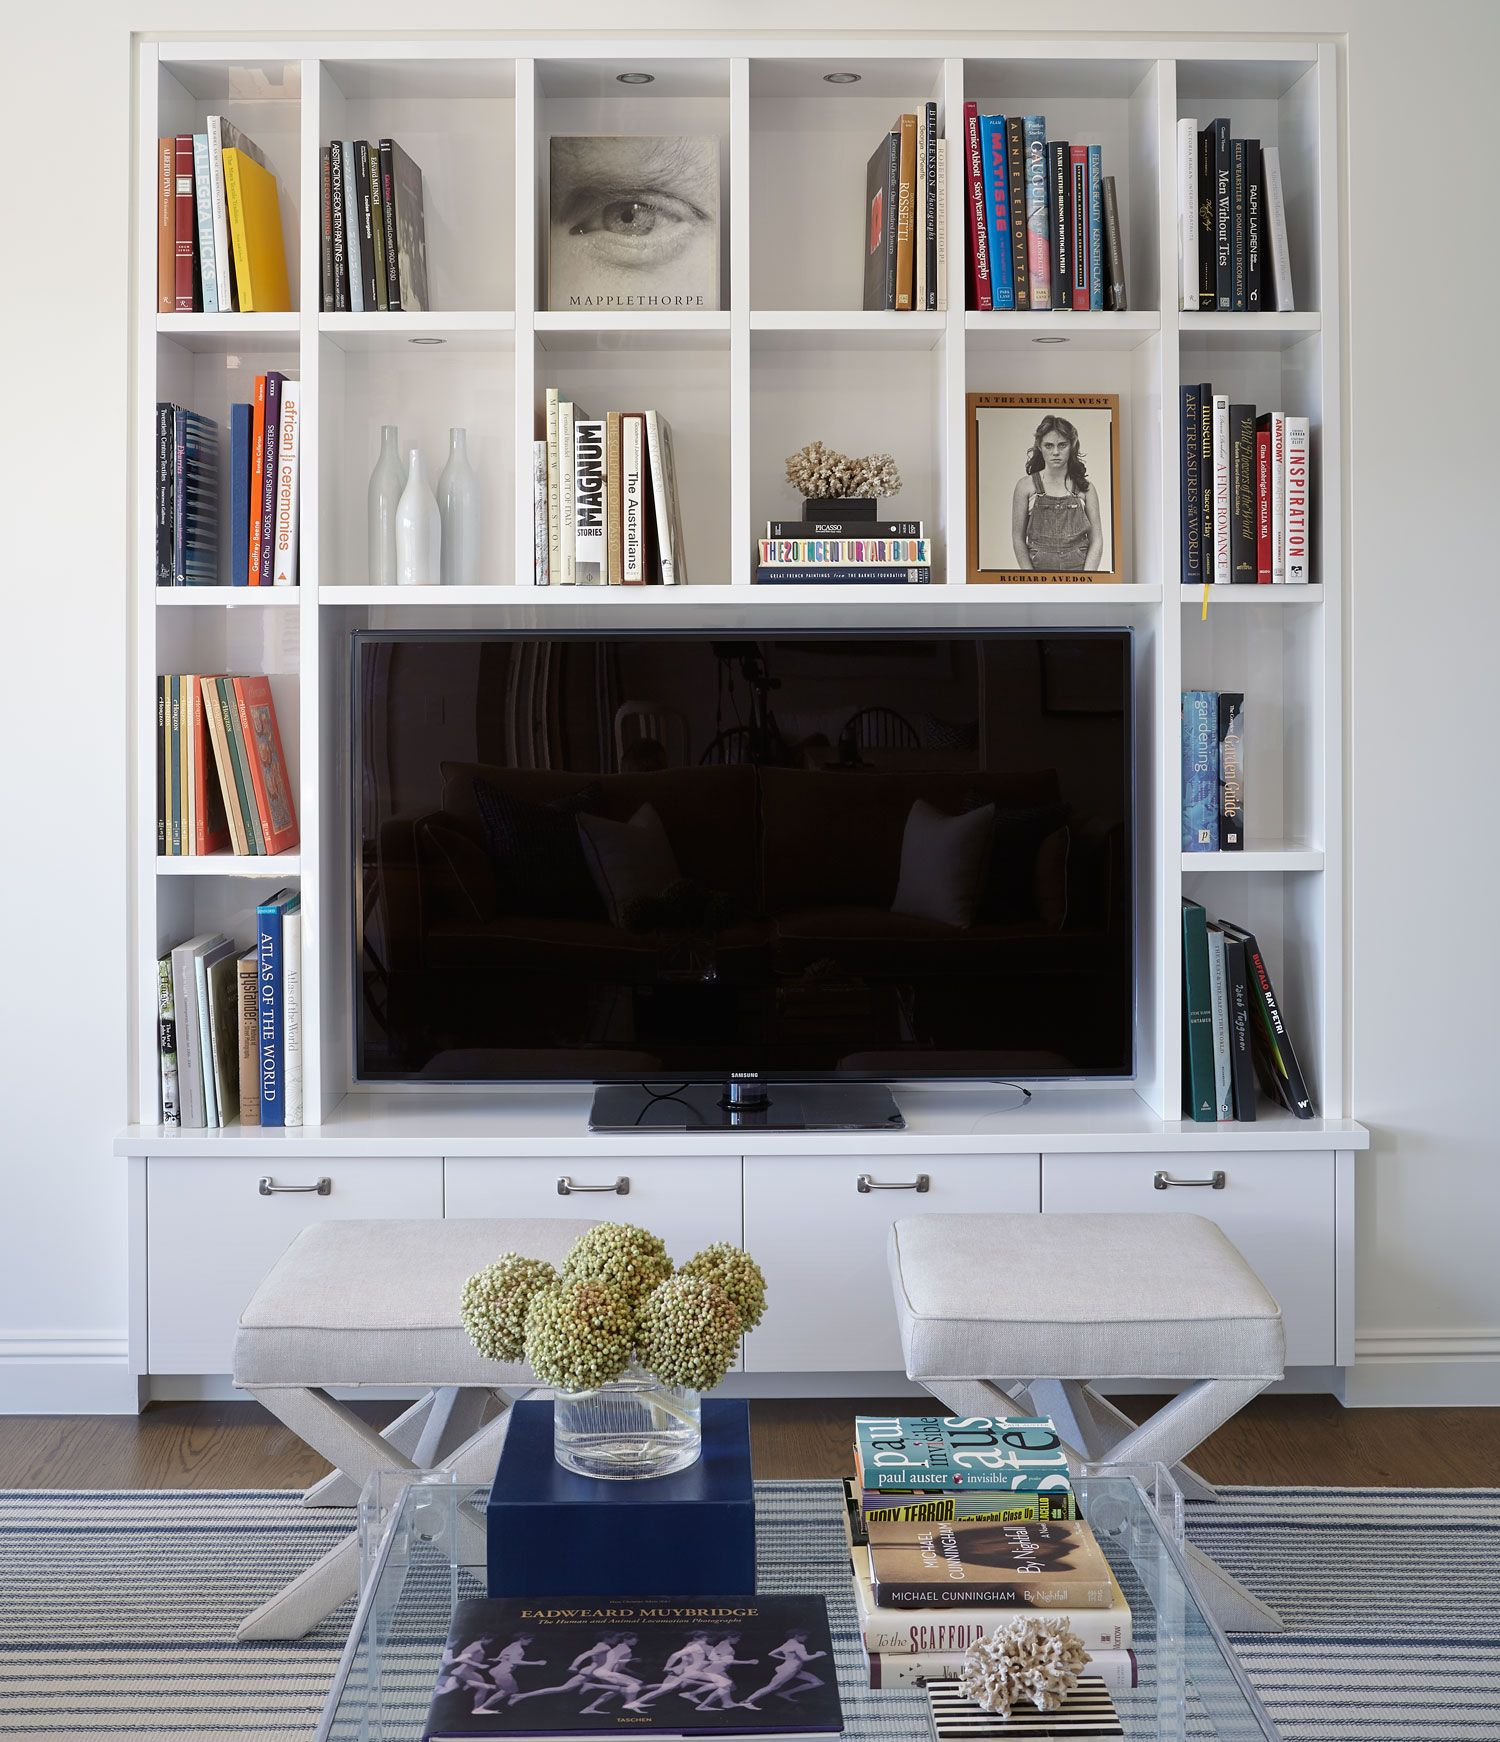 Cool Design For A Living Room: This Is A Cool Design For The Front Living Room Tv/media